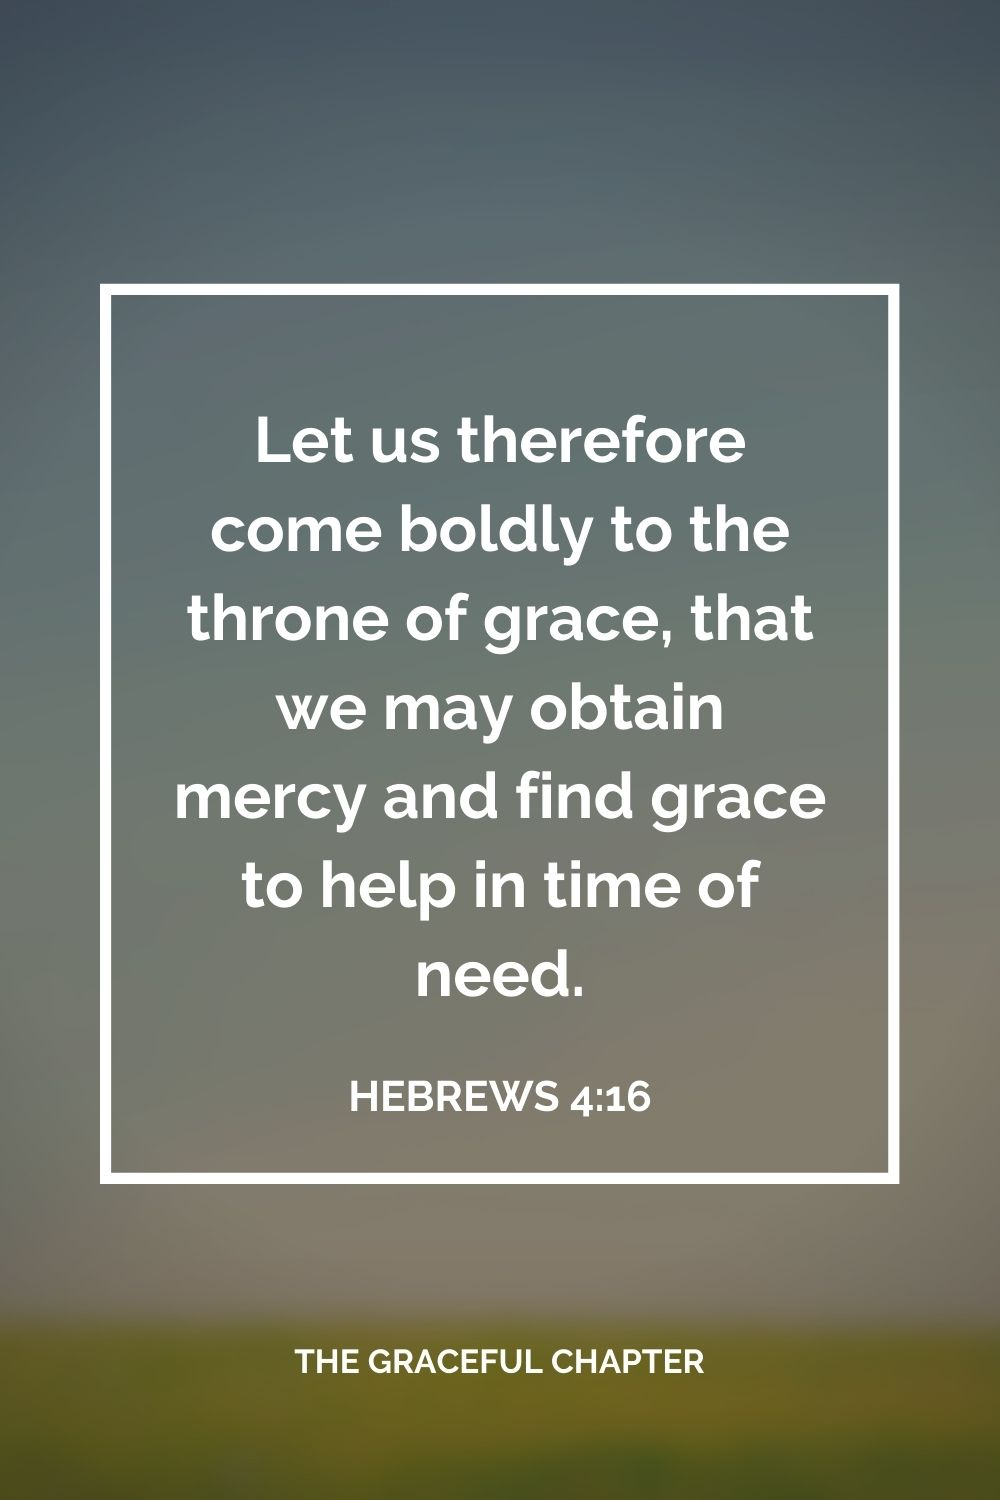 Let us therefore come boldly to the throne of grace, that we may obtain mercy and find grace to help in time of need. Hebrews 4:16